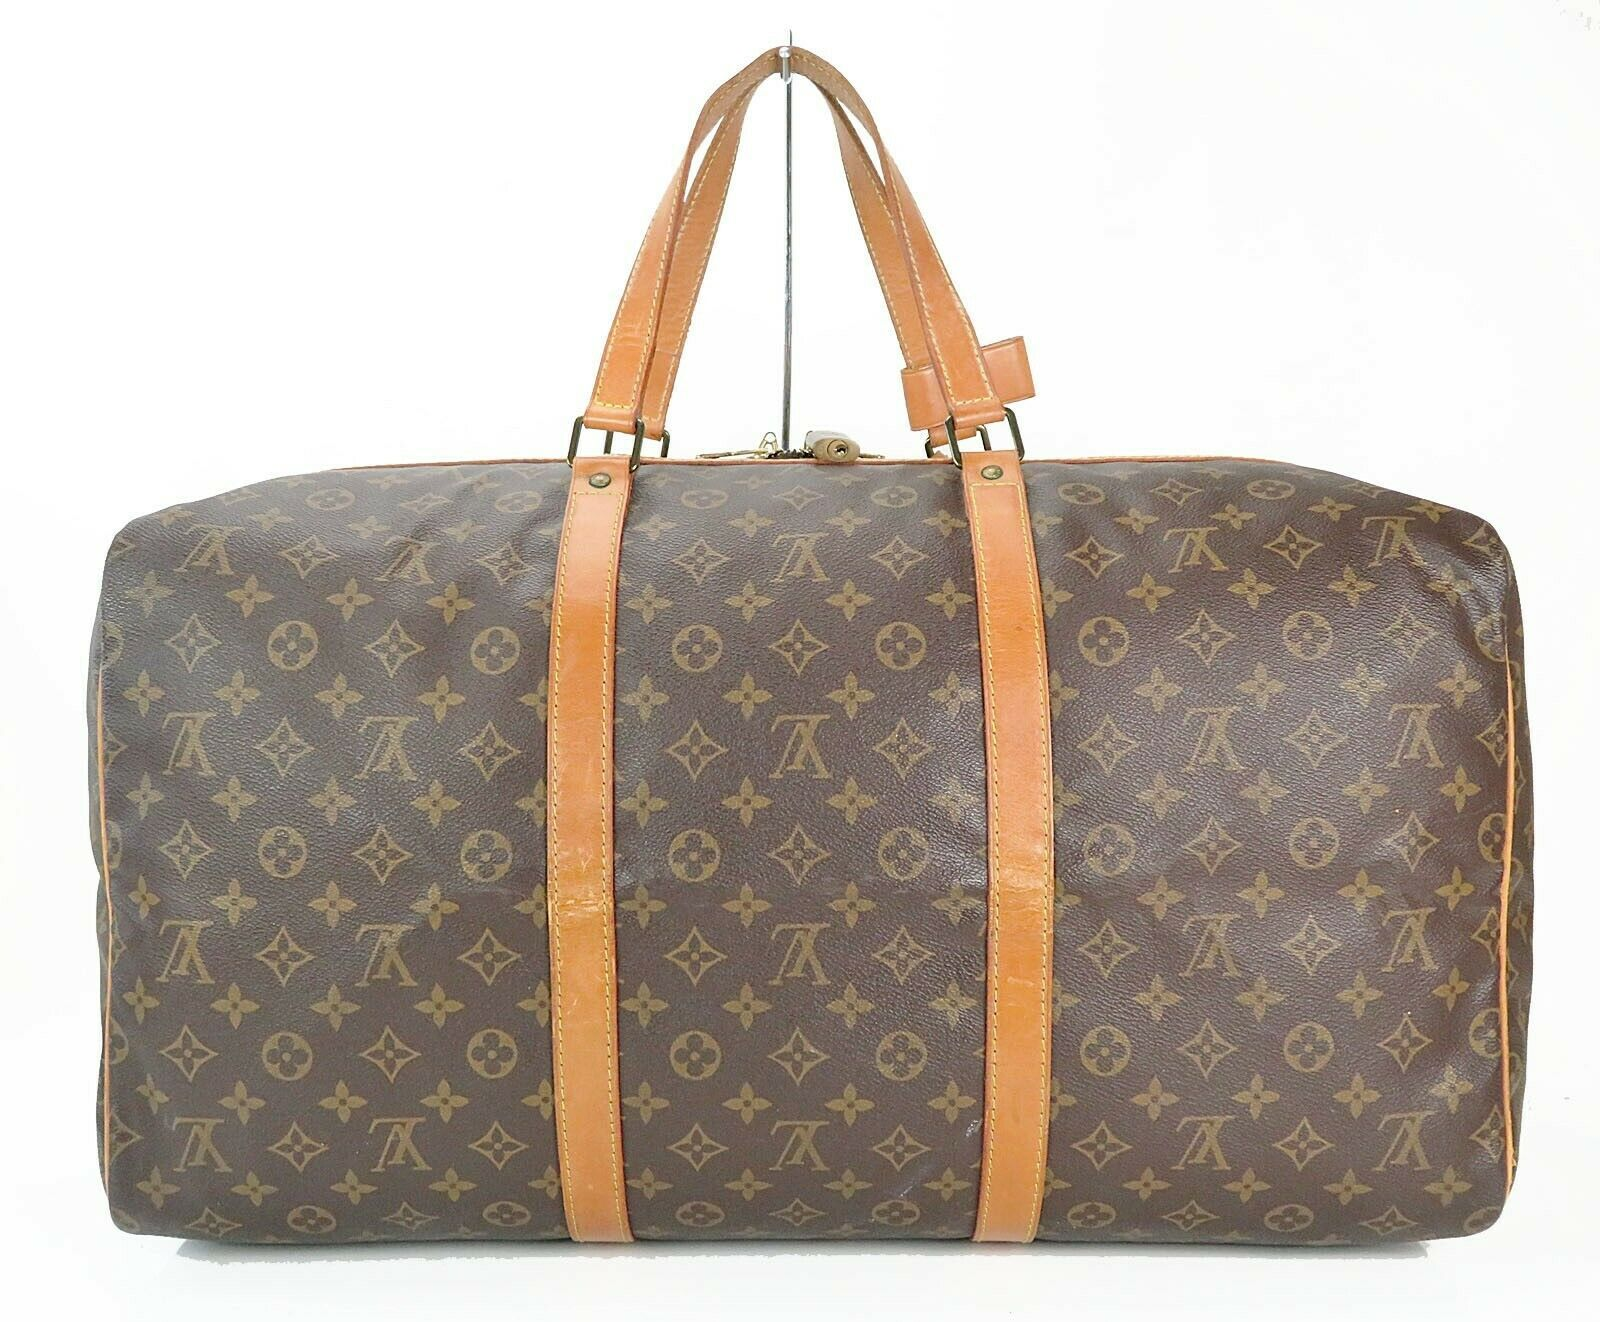 Authentic LOUIS VUITTON Sac Souple 55 Monogram Tote Duffle Bag #34978 image 3